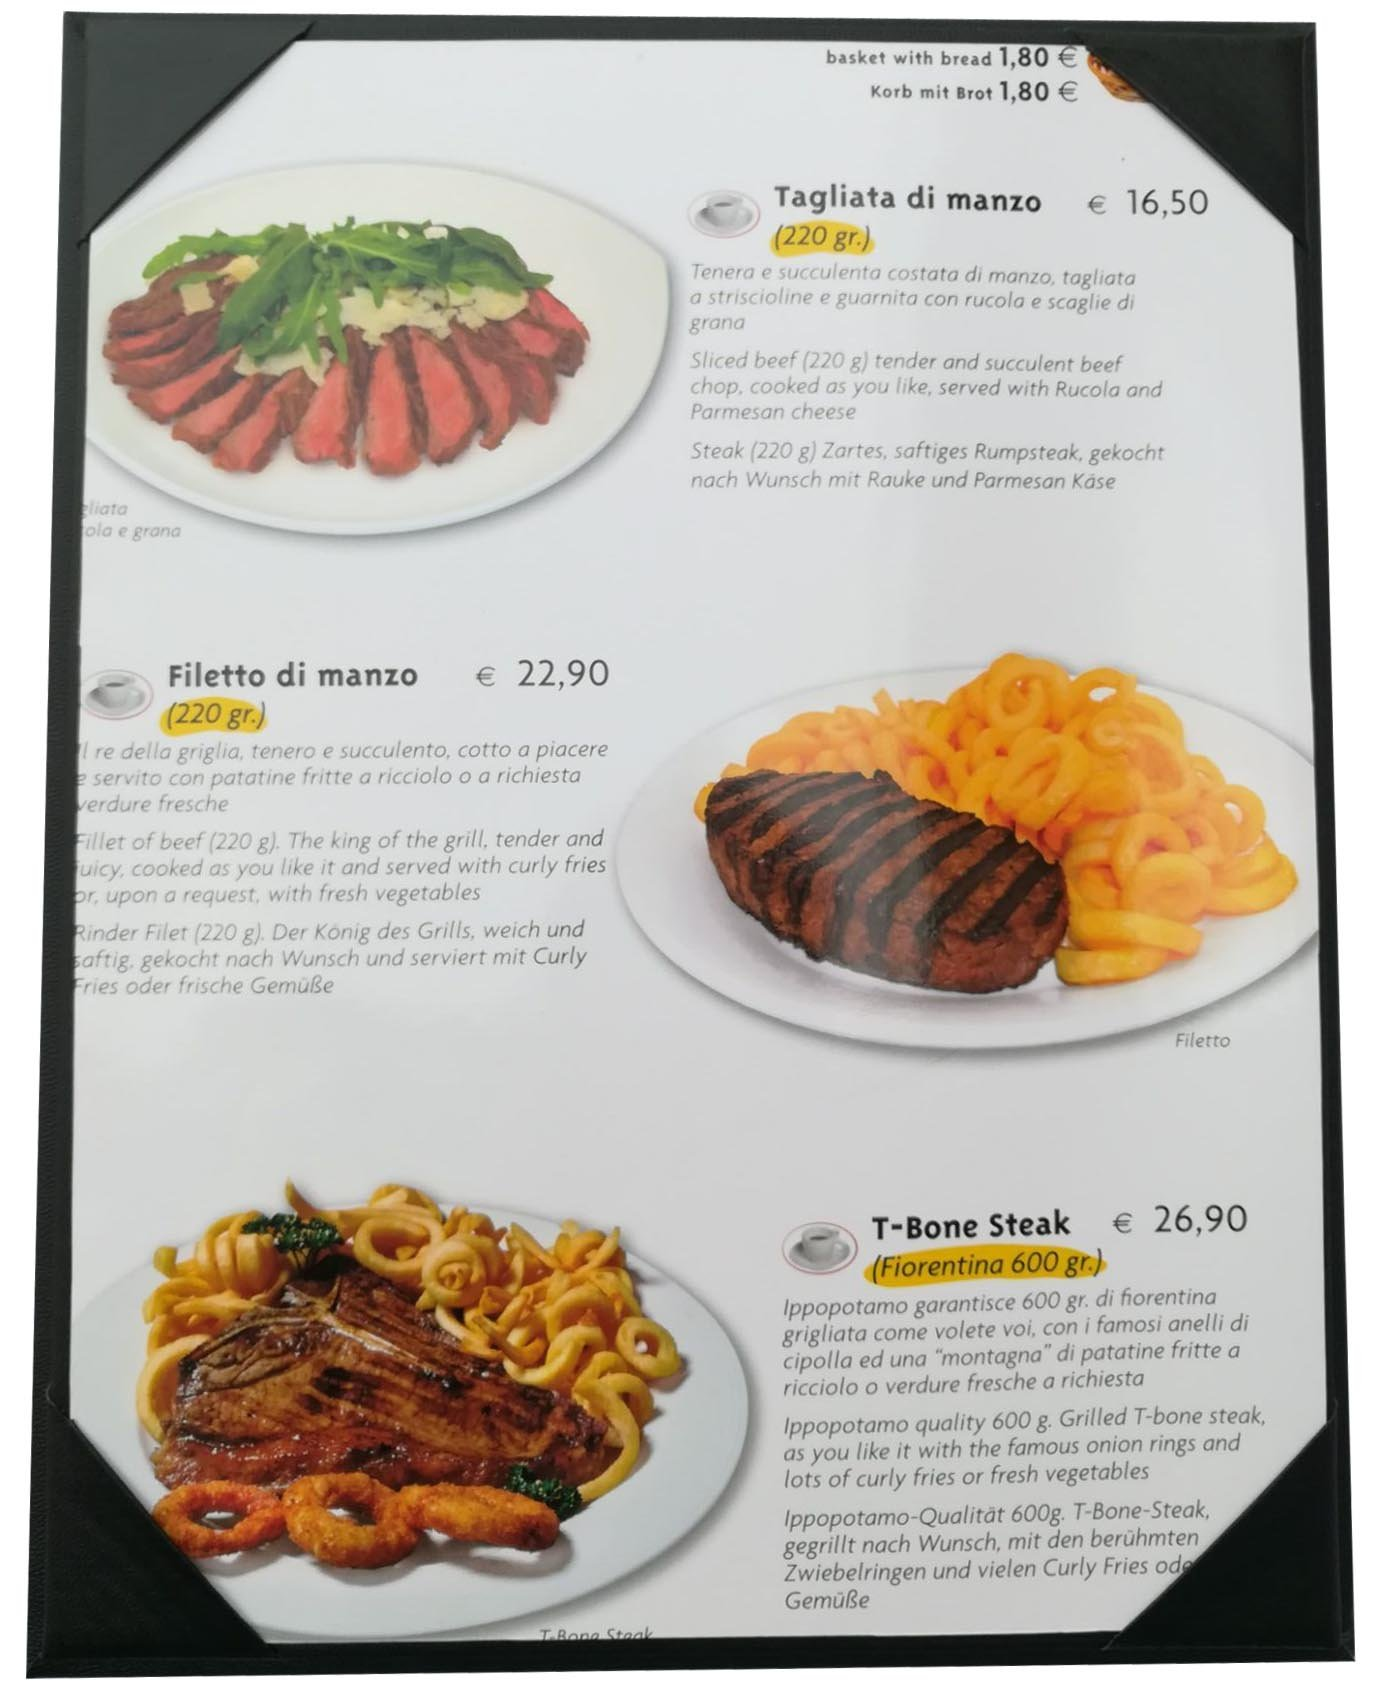 10 Pcs of Restaurant Menu Covers Holders 8.5'' X 11'' Inches,Single View,Sold By Case,With Clear PVC sheets for Paper Protection